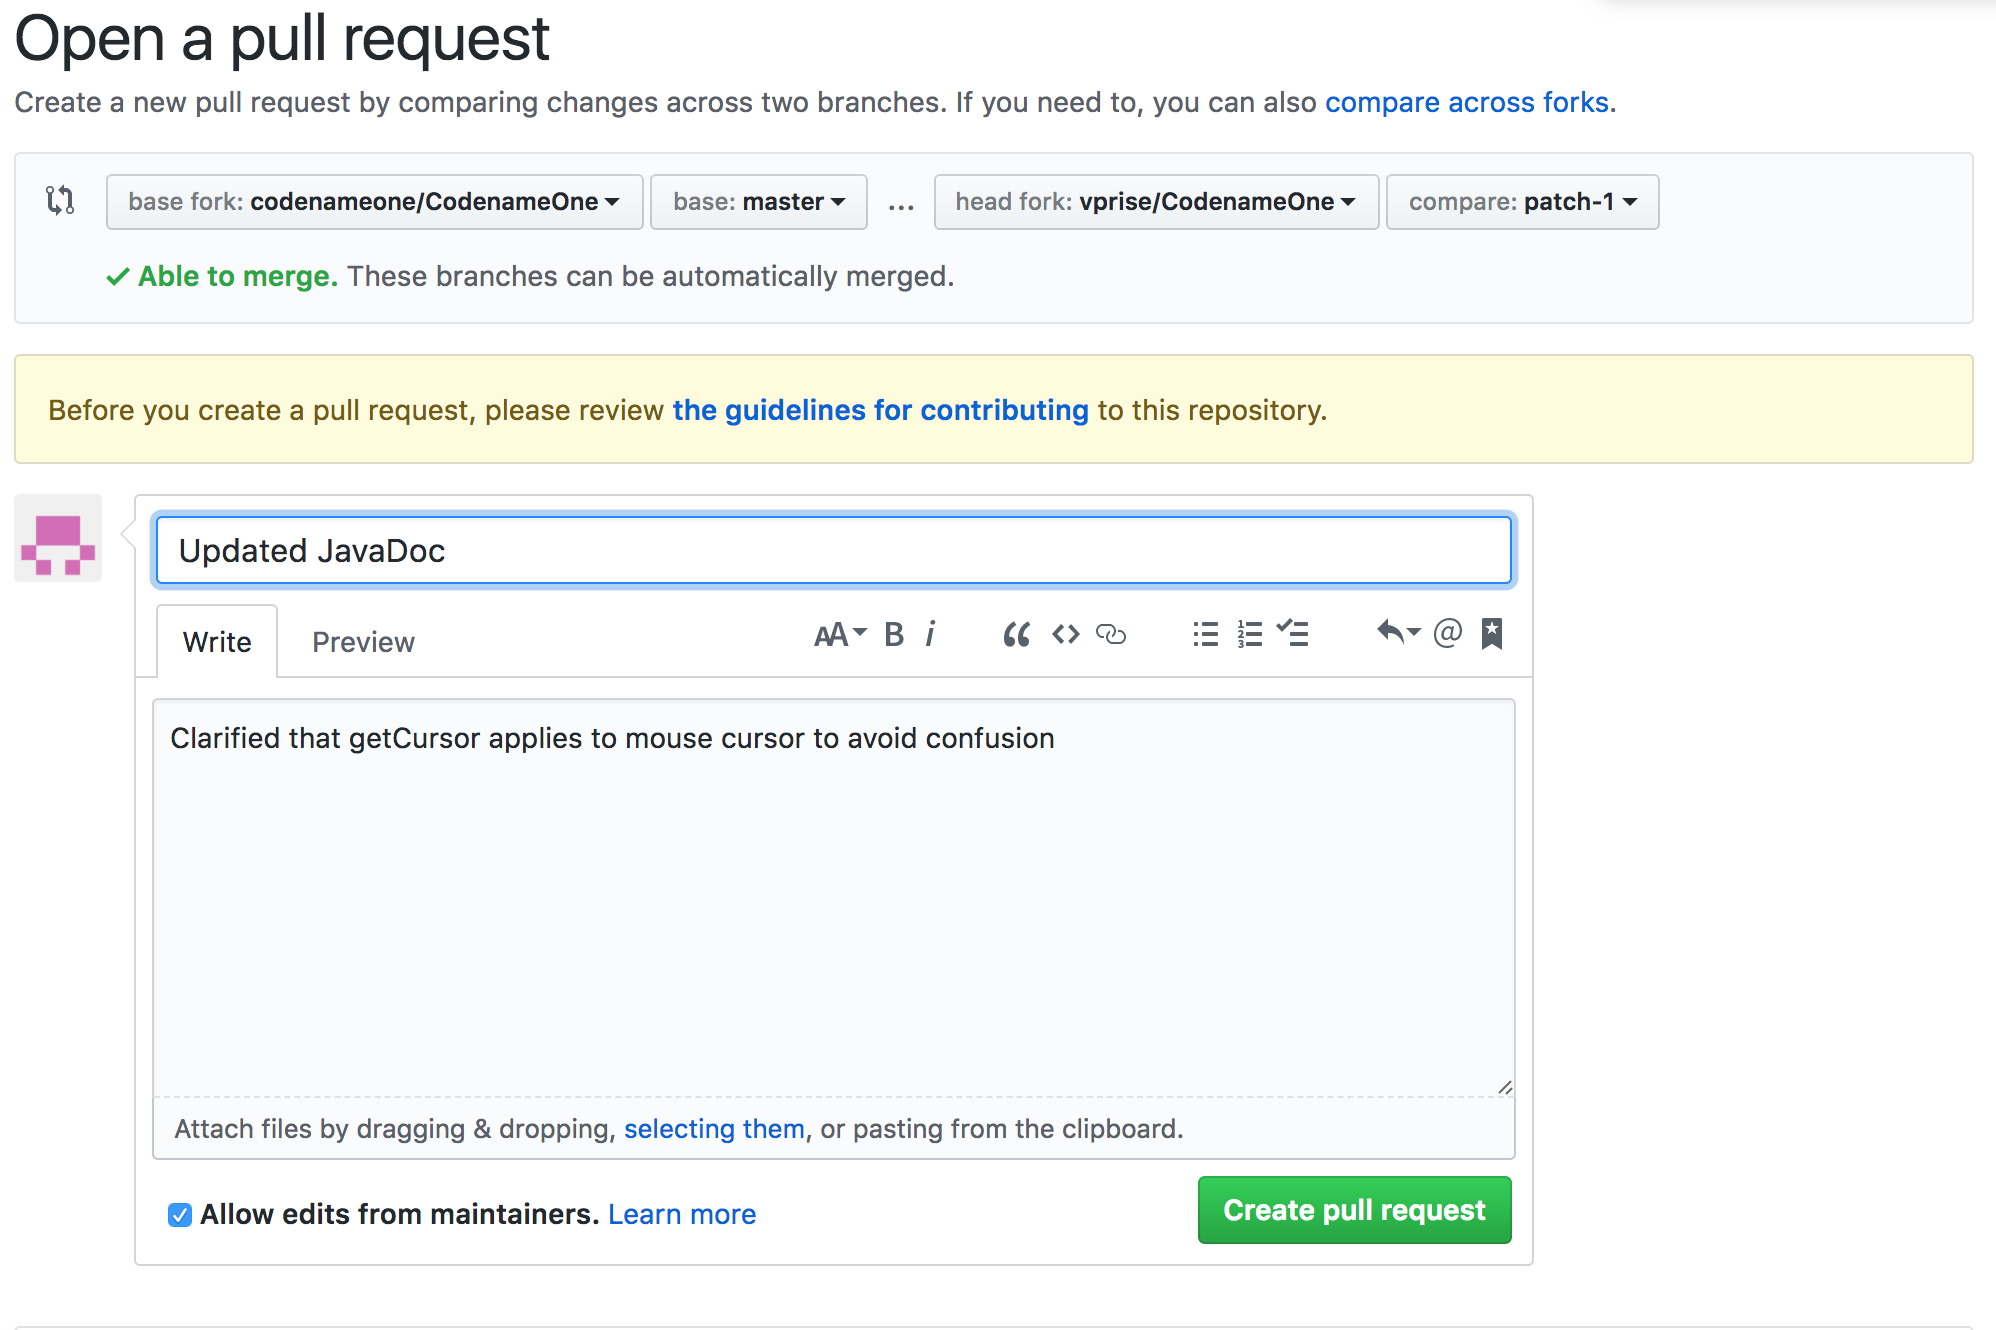 Second stage of pull request you can edit the submit comment